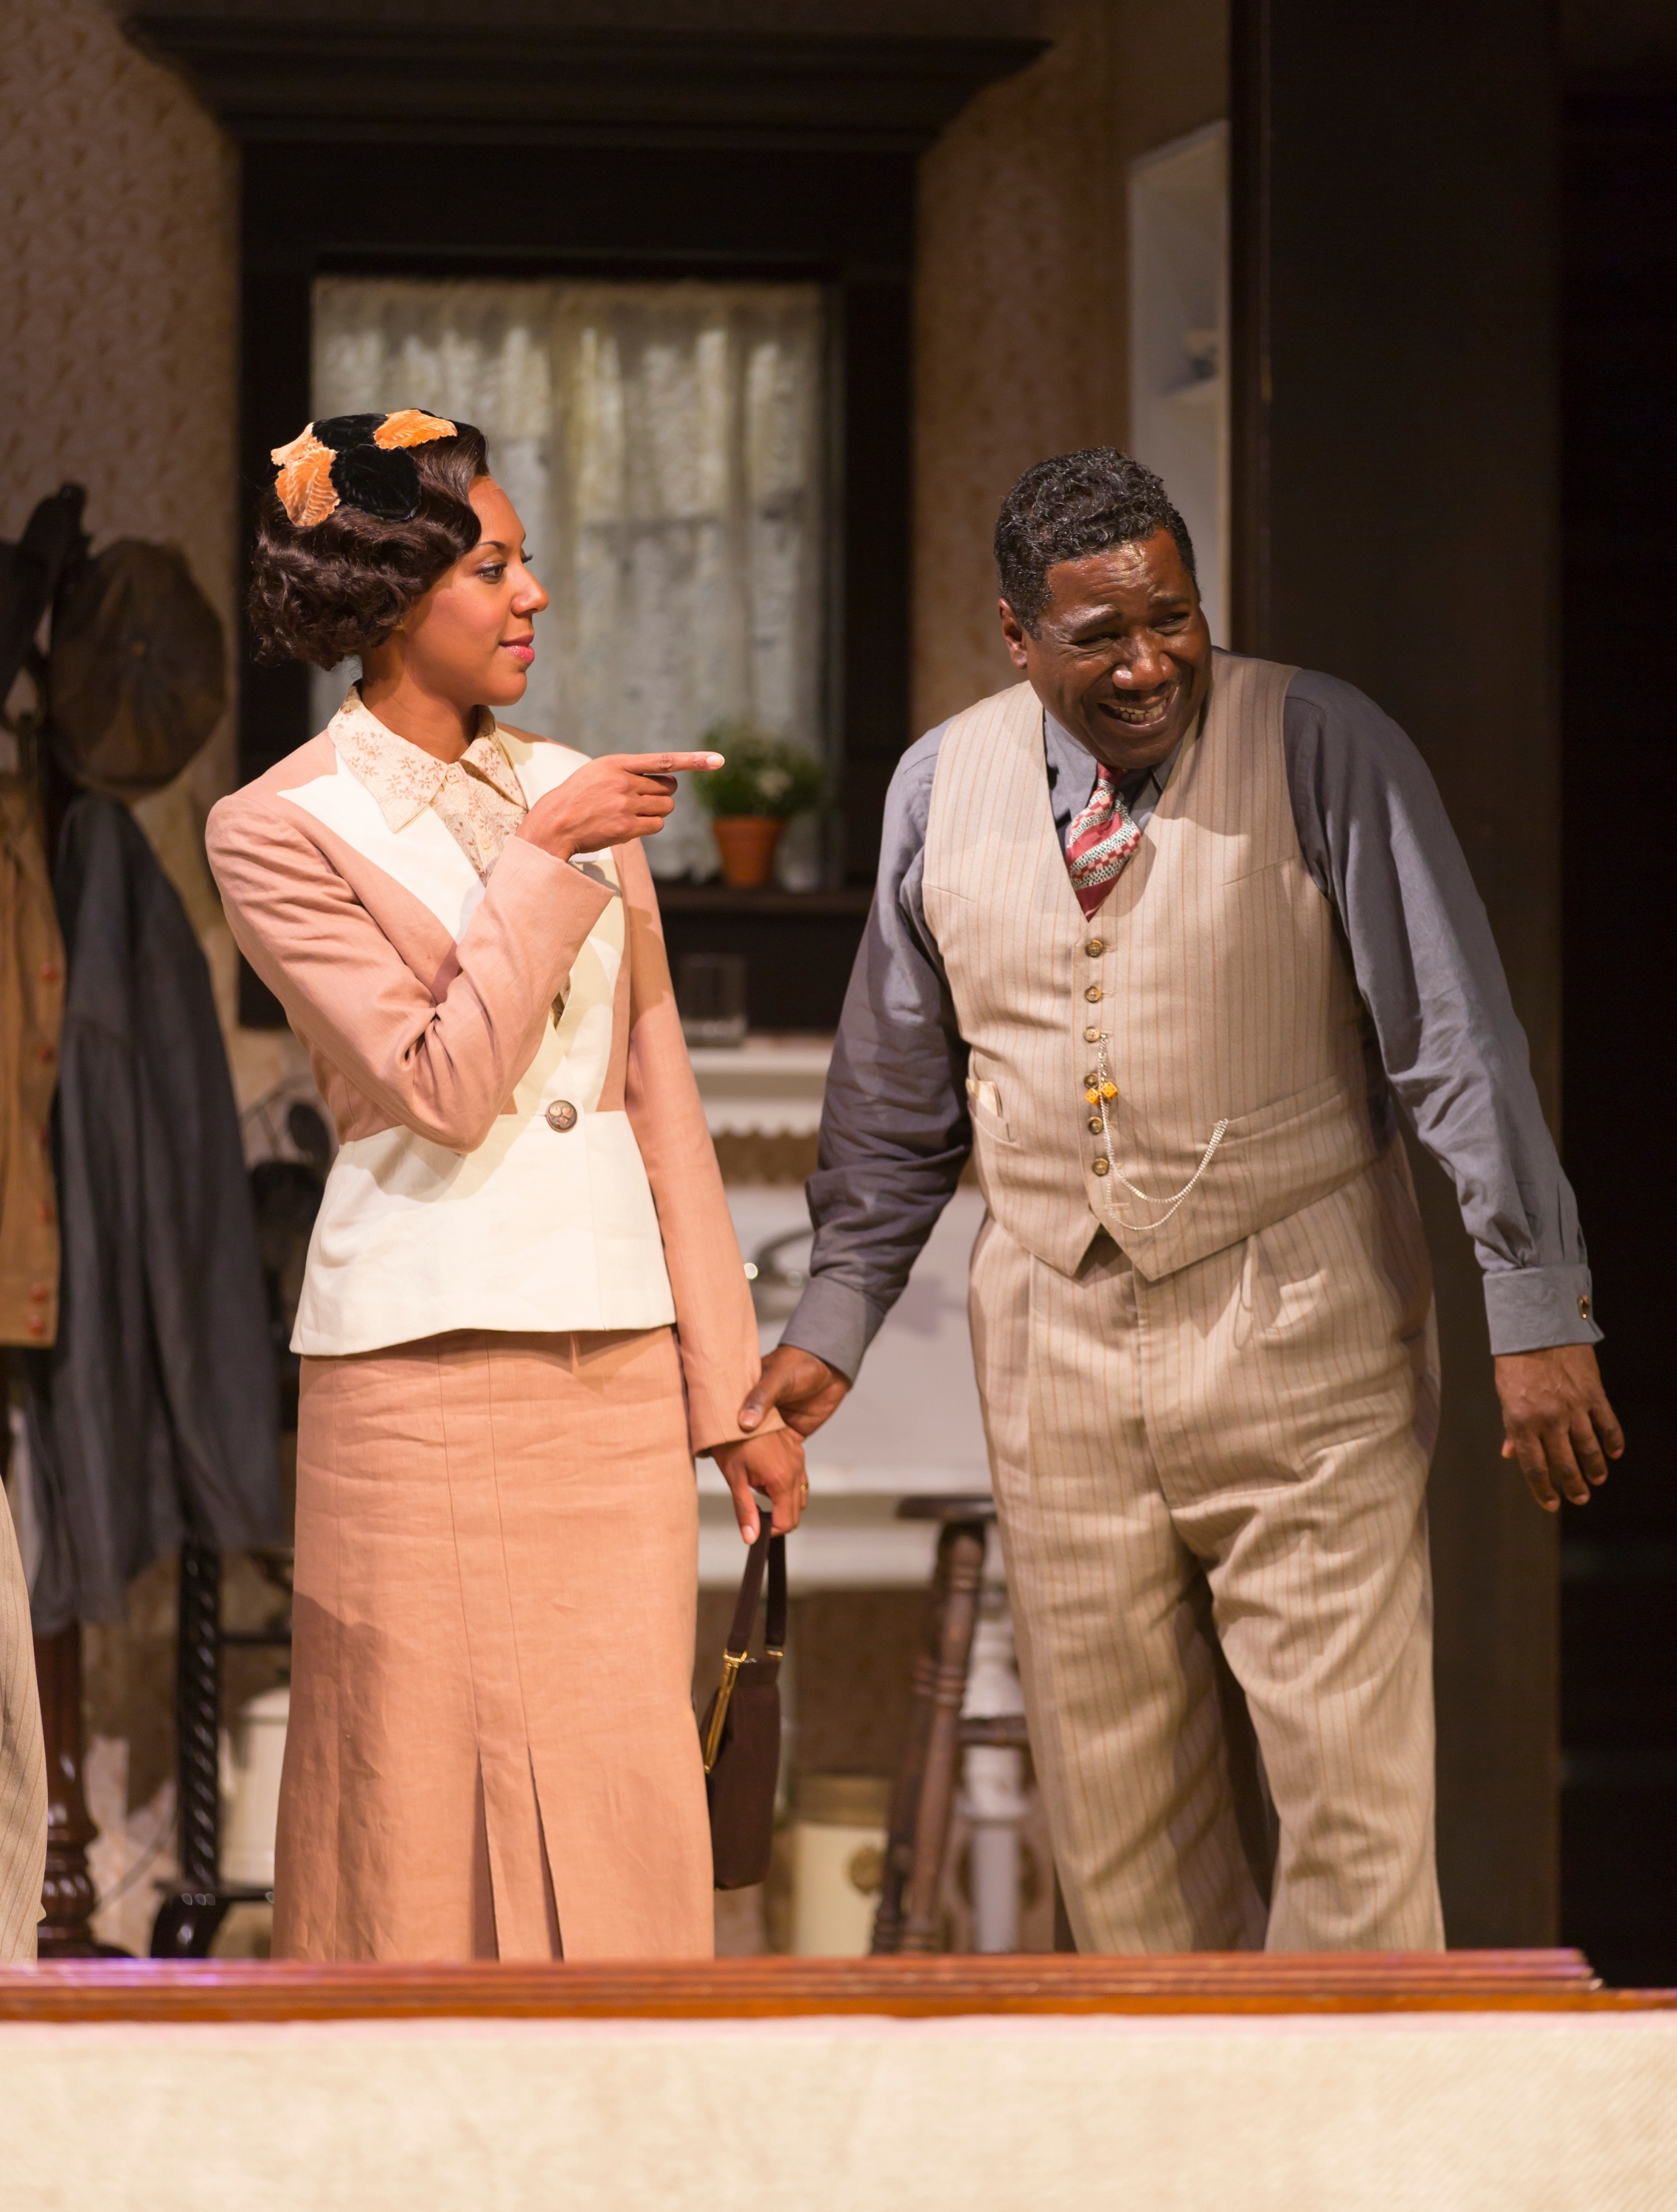 Berniece (Christina Acosta Robinson), Wining Boy (Cleavant Derricks) (photo: T. Charles Erickson)